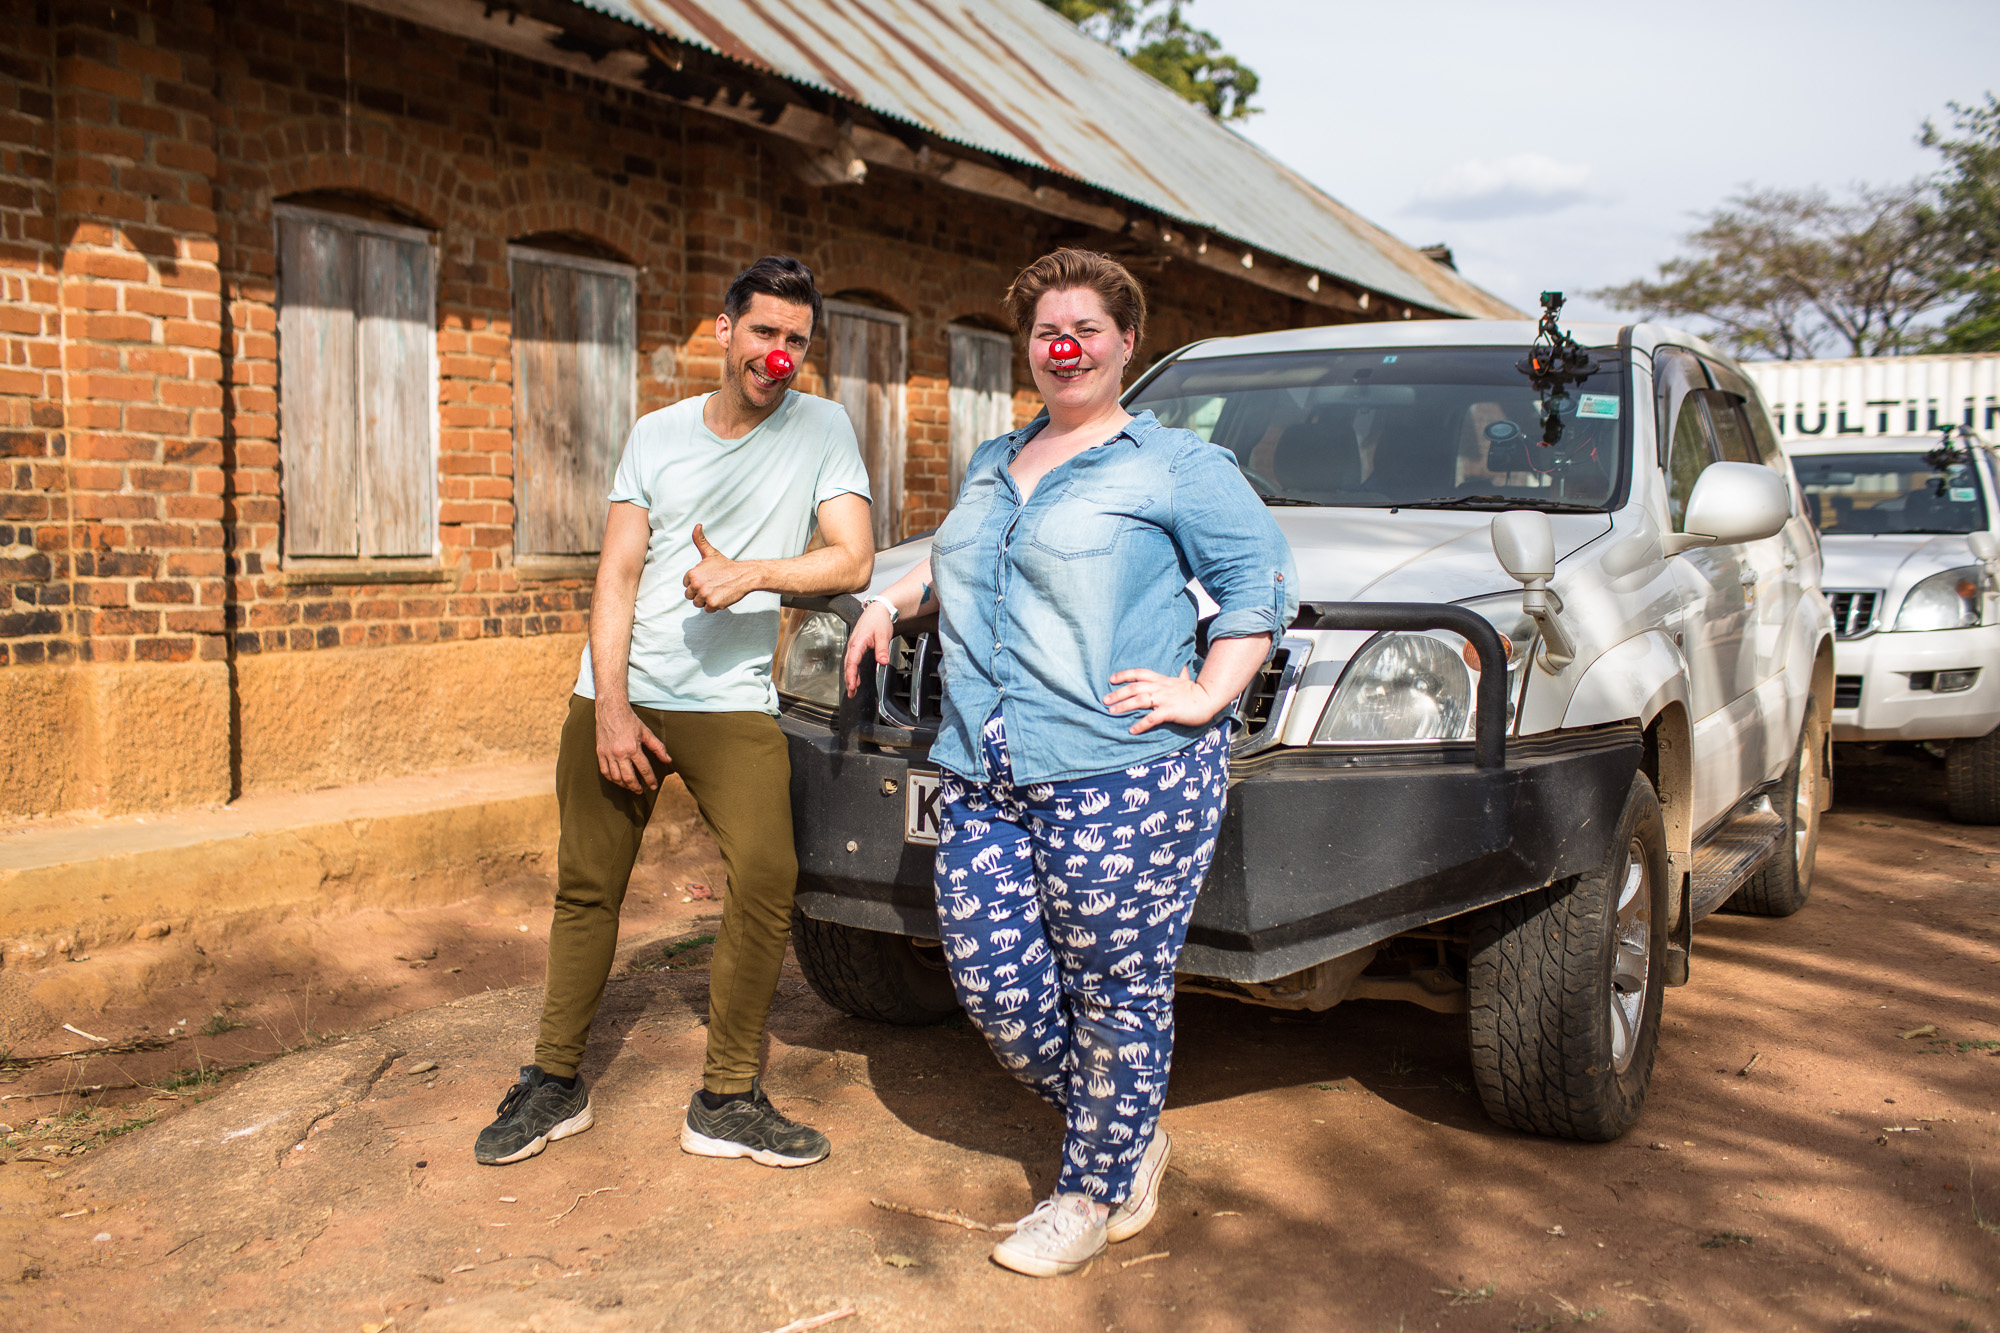 Russell Kane and Katy Brand, Red Nose Convoy drivers next to their vehicle.